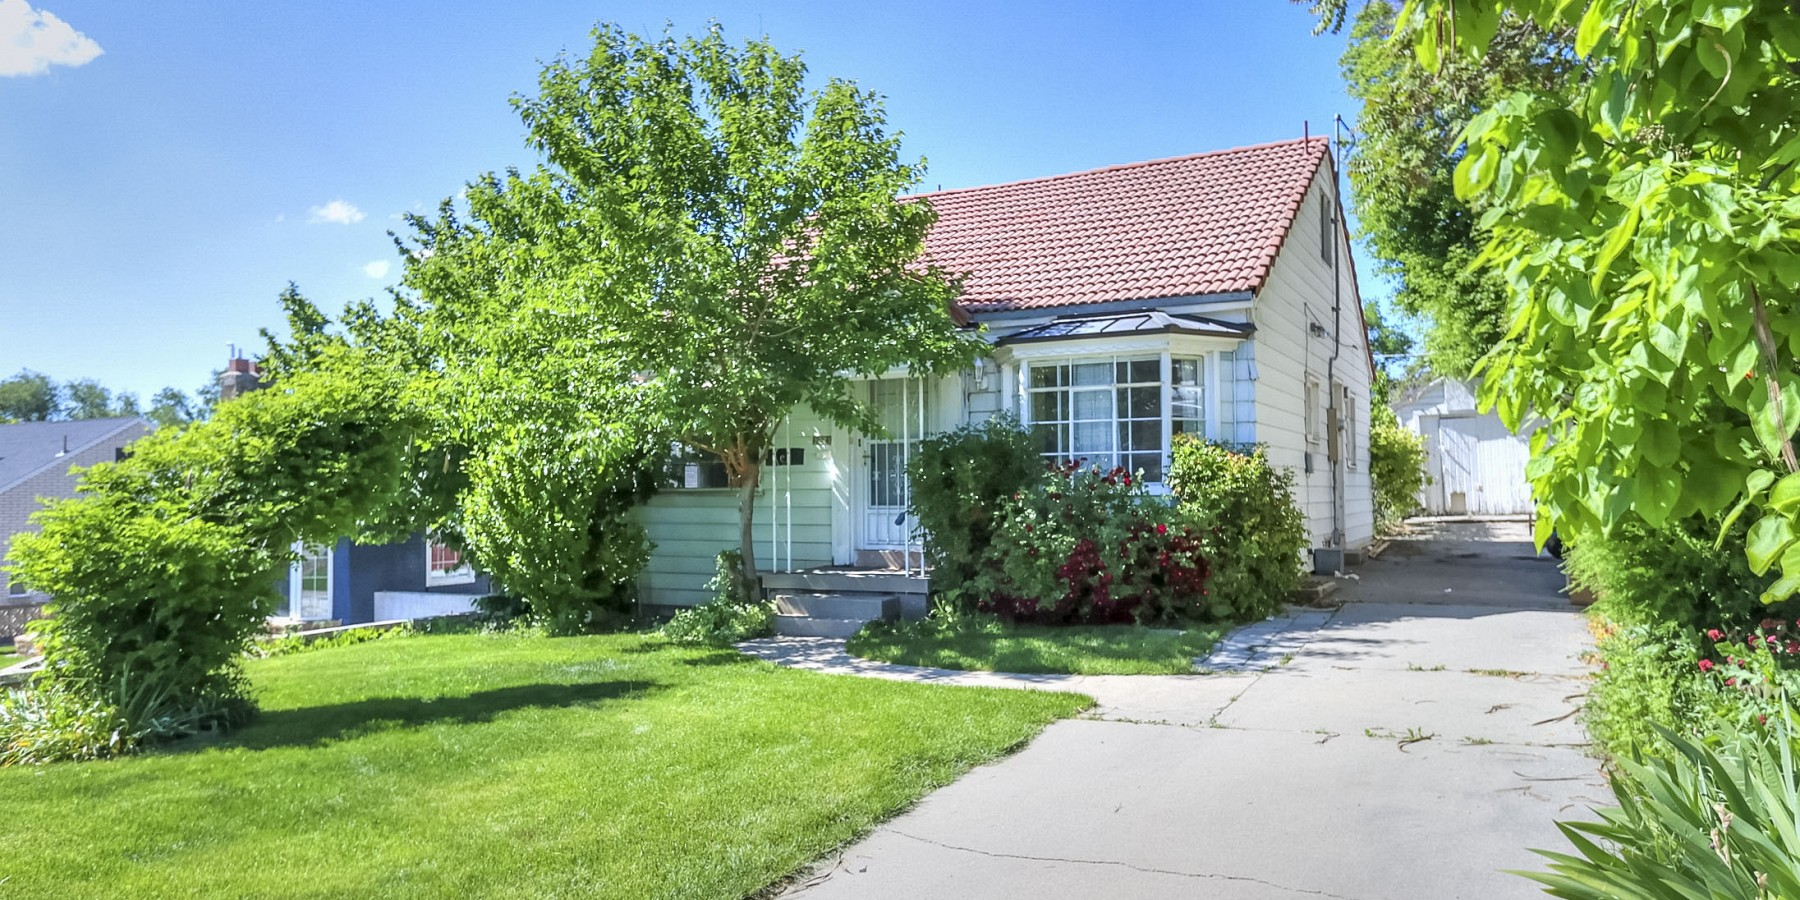 1221 East 1300 South, Salt Lake City, UT 84105